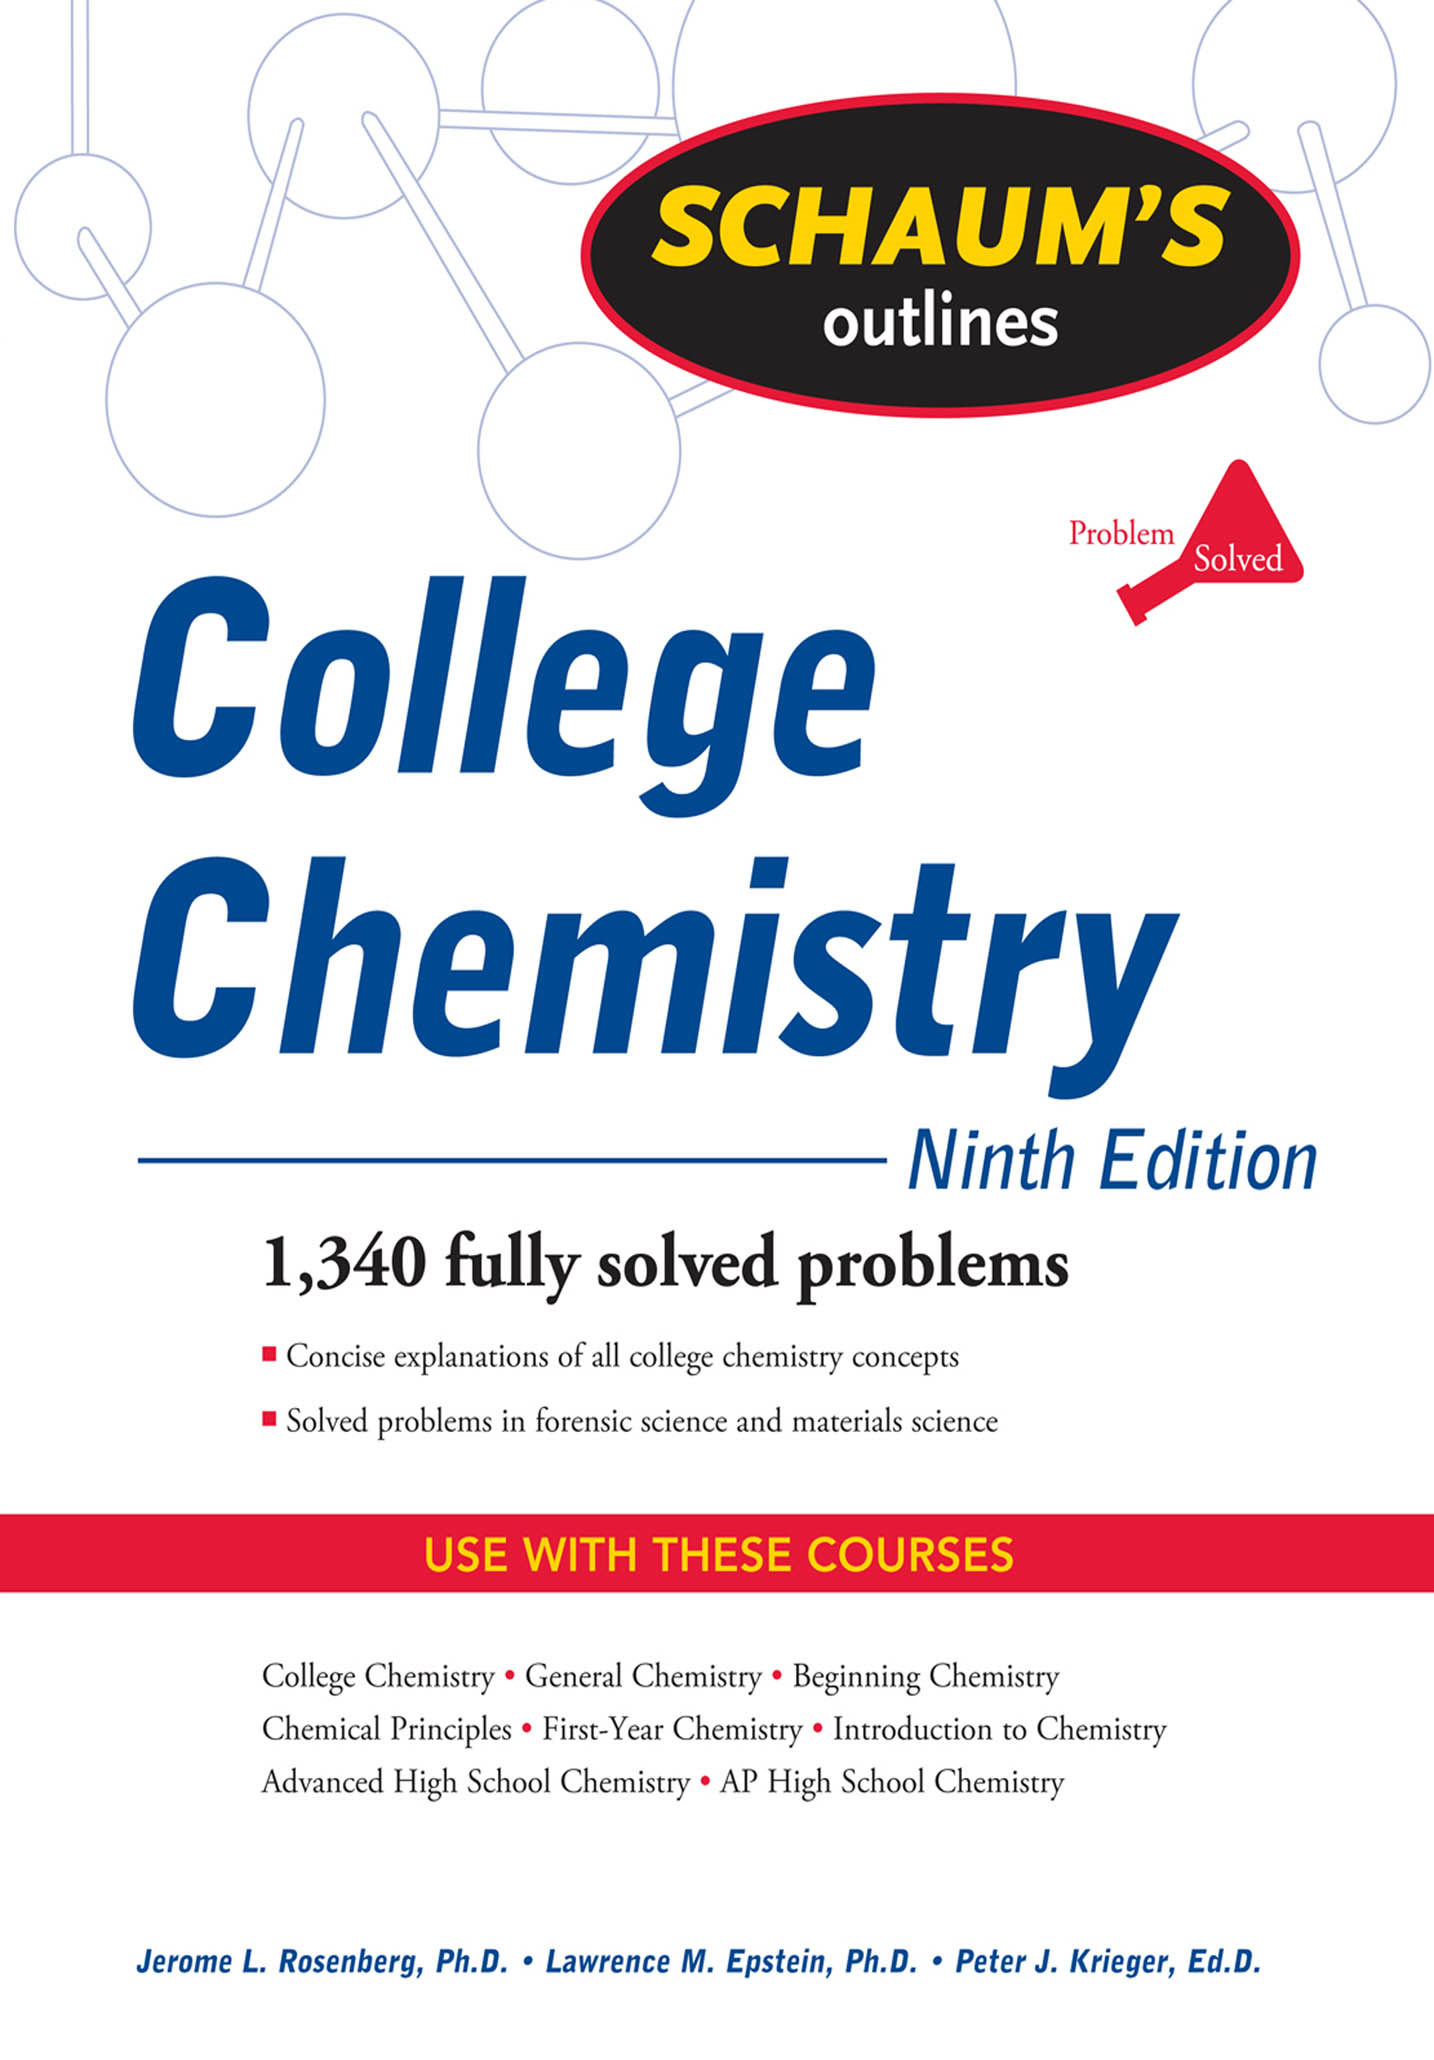 Schaum's Outline of College Chemistry, Ninth Edition By:  Lawrence Epstein, Peter Krieger,Jerome Rosenberg